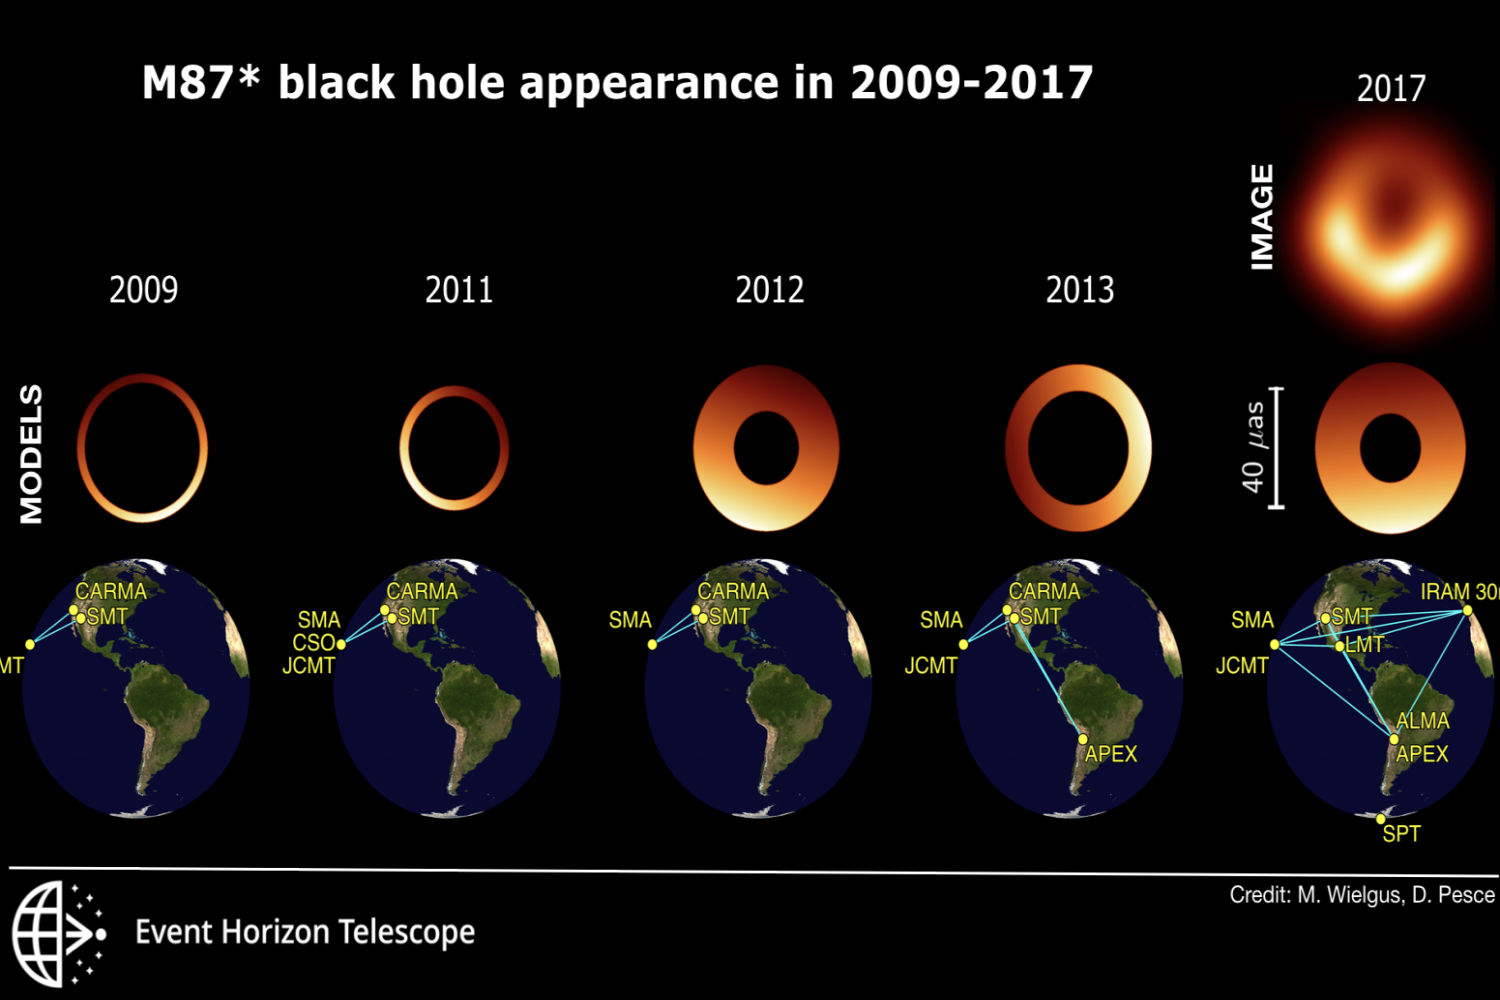 MIT: The wobbling shadow of the M87* black hole